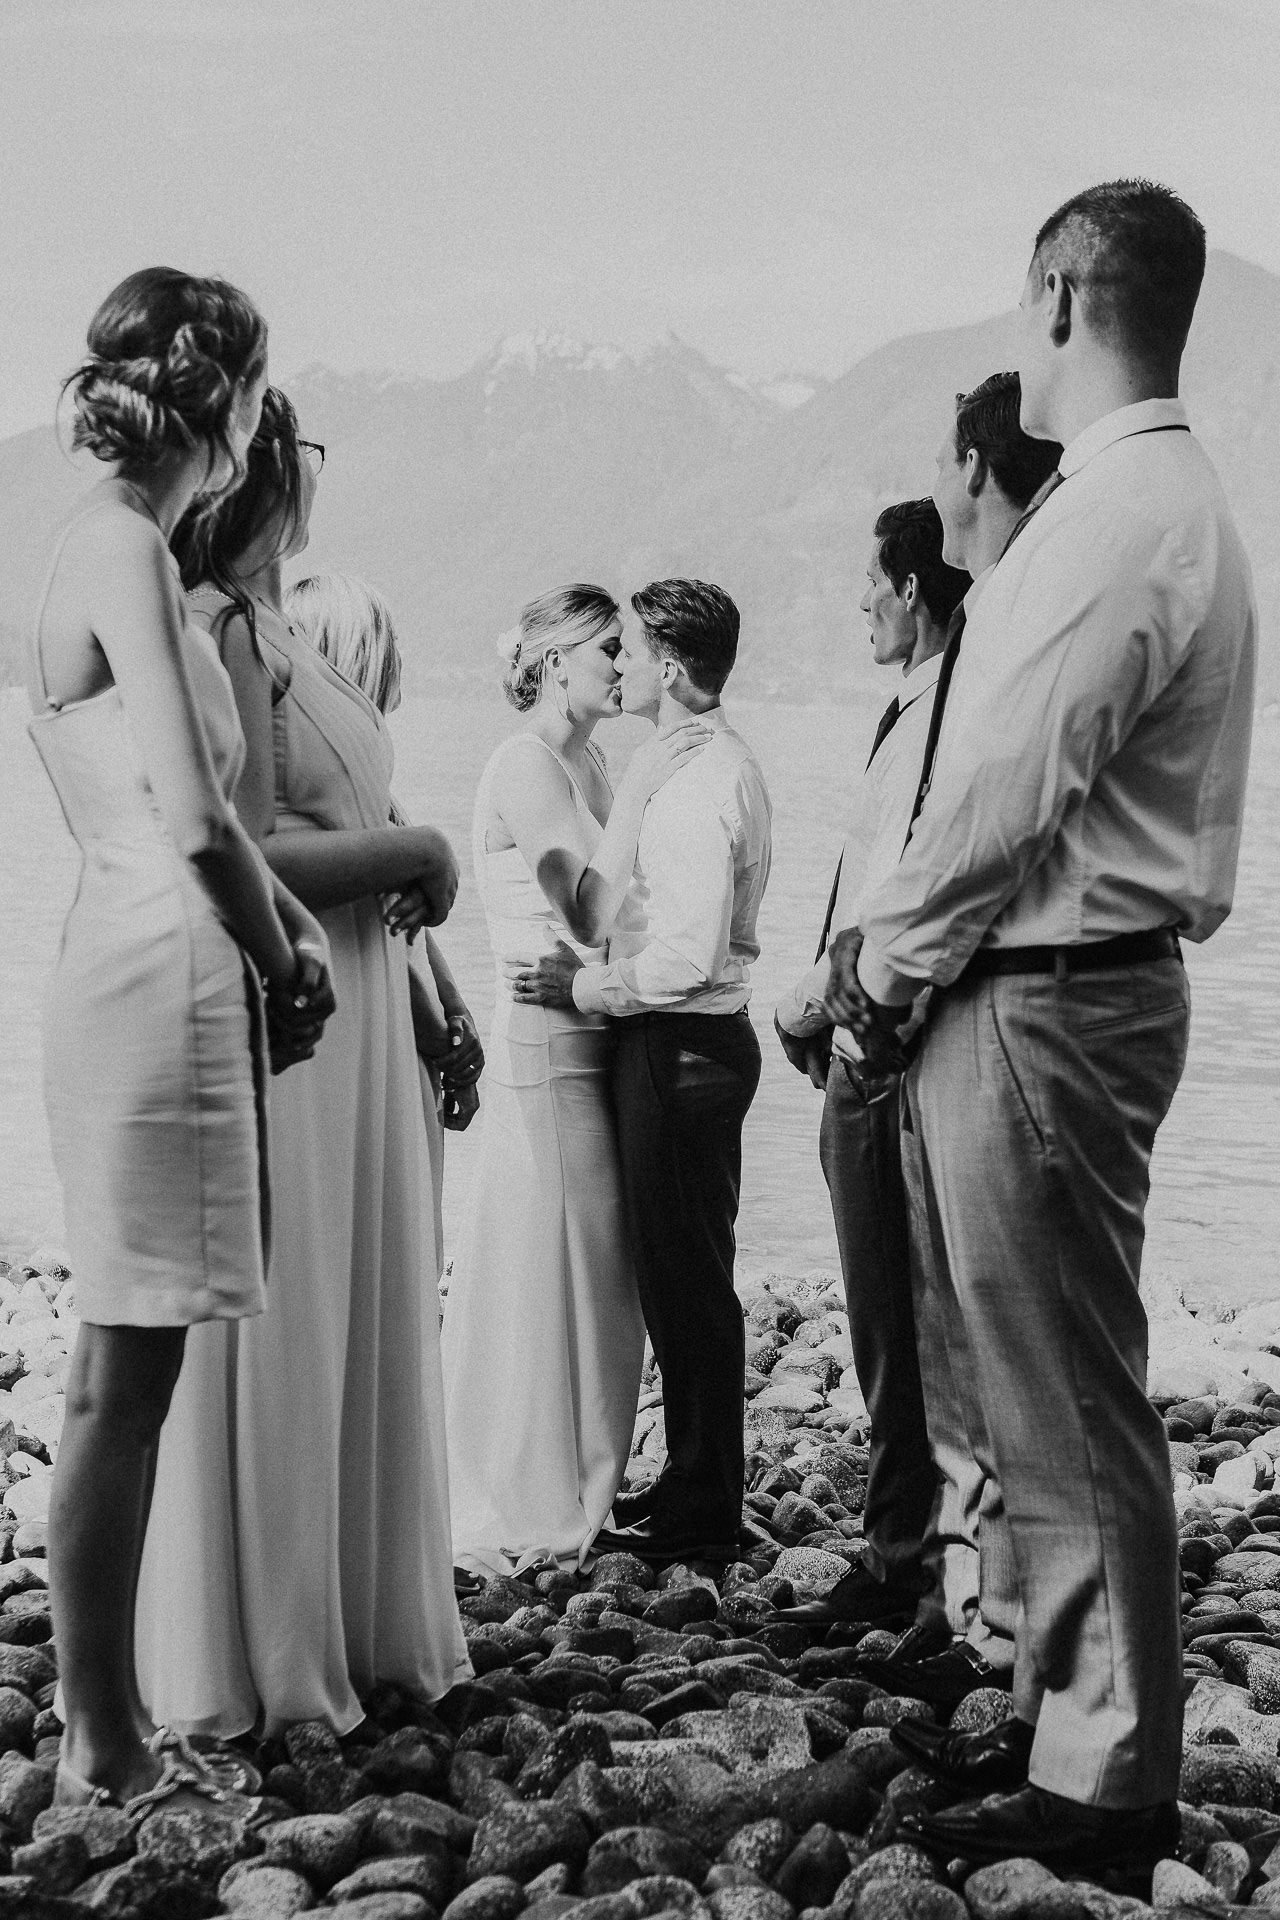 Nadine-Hansen-Photography-Vancouver-Wedding-2.jpg